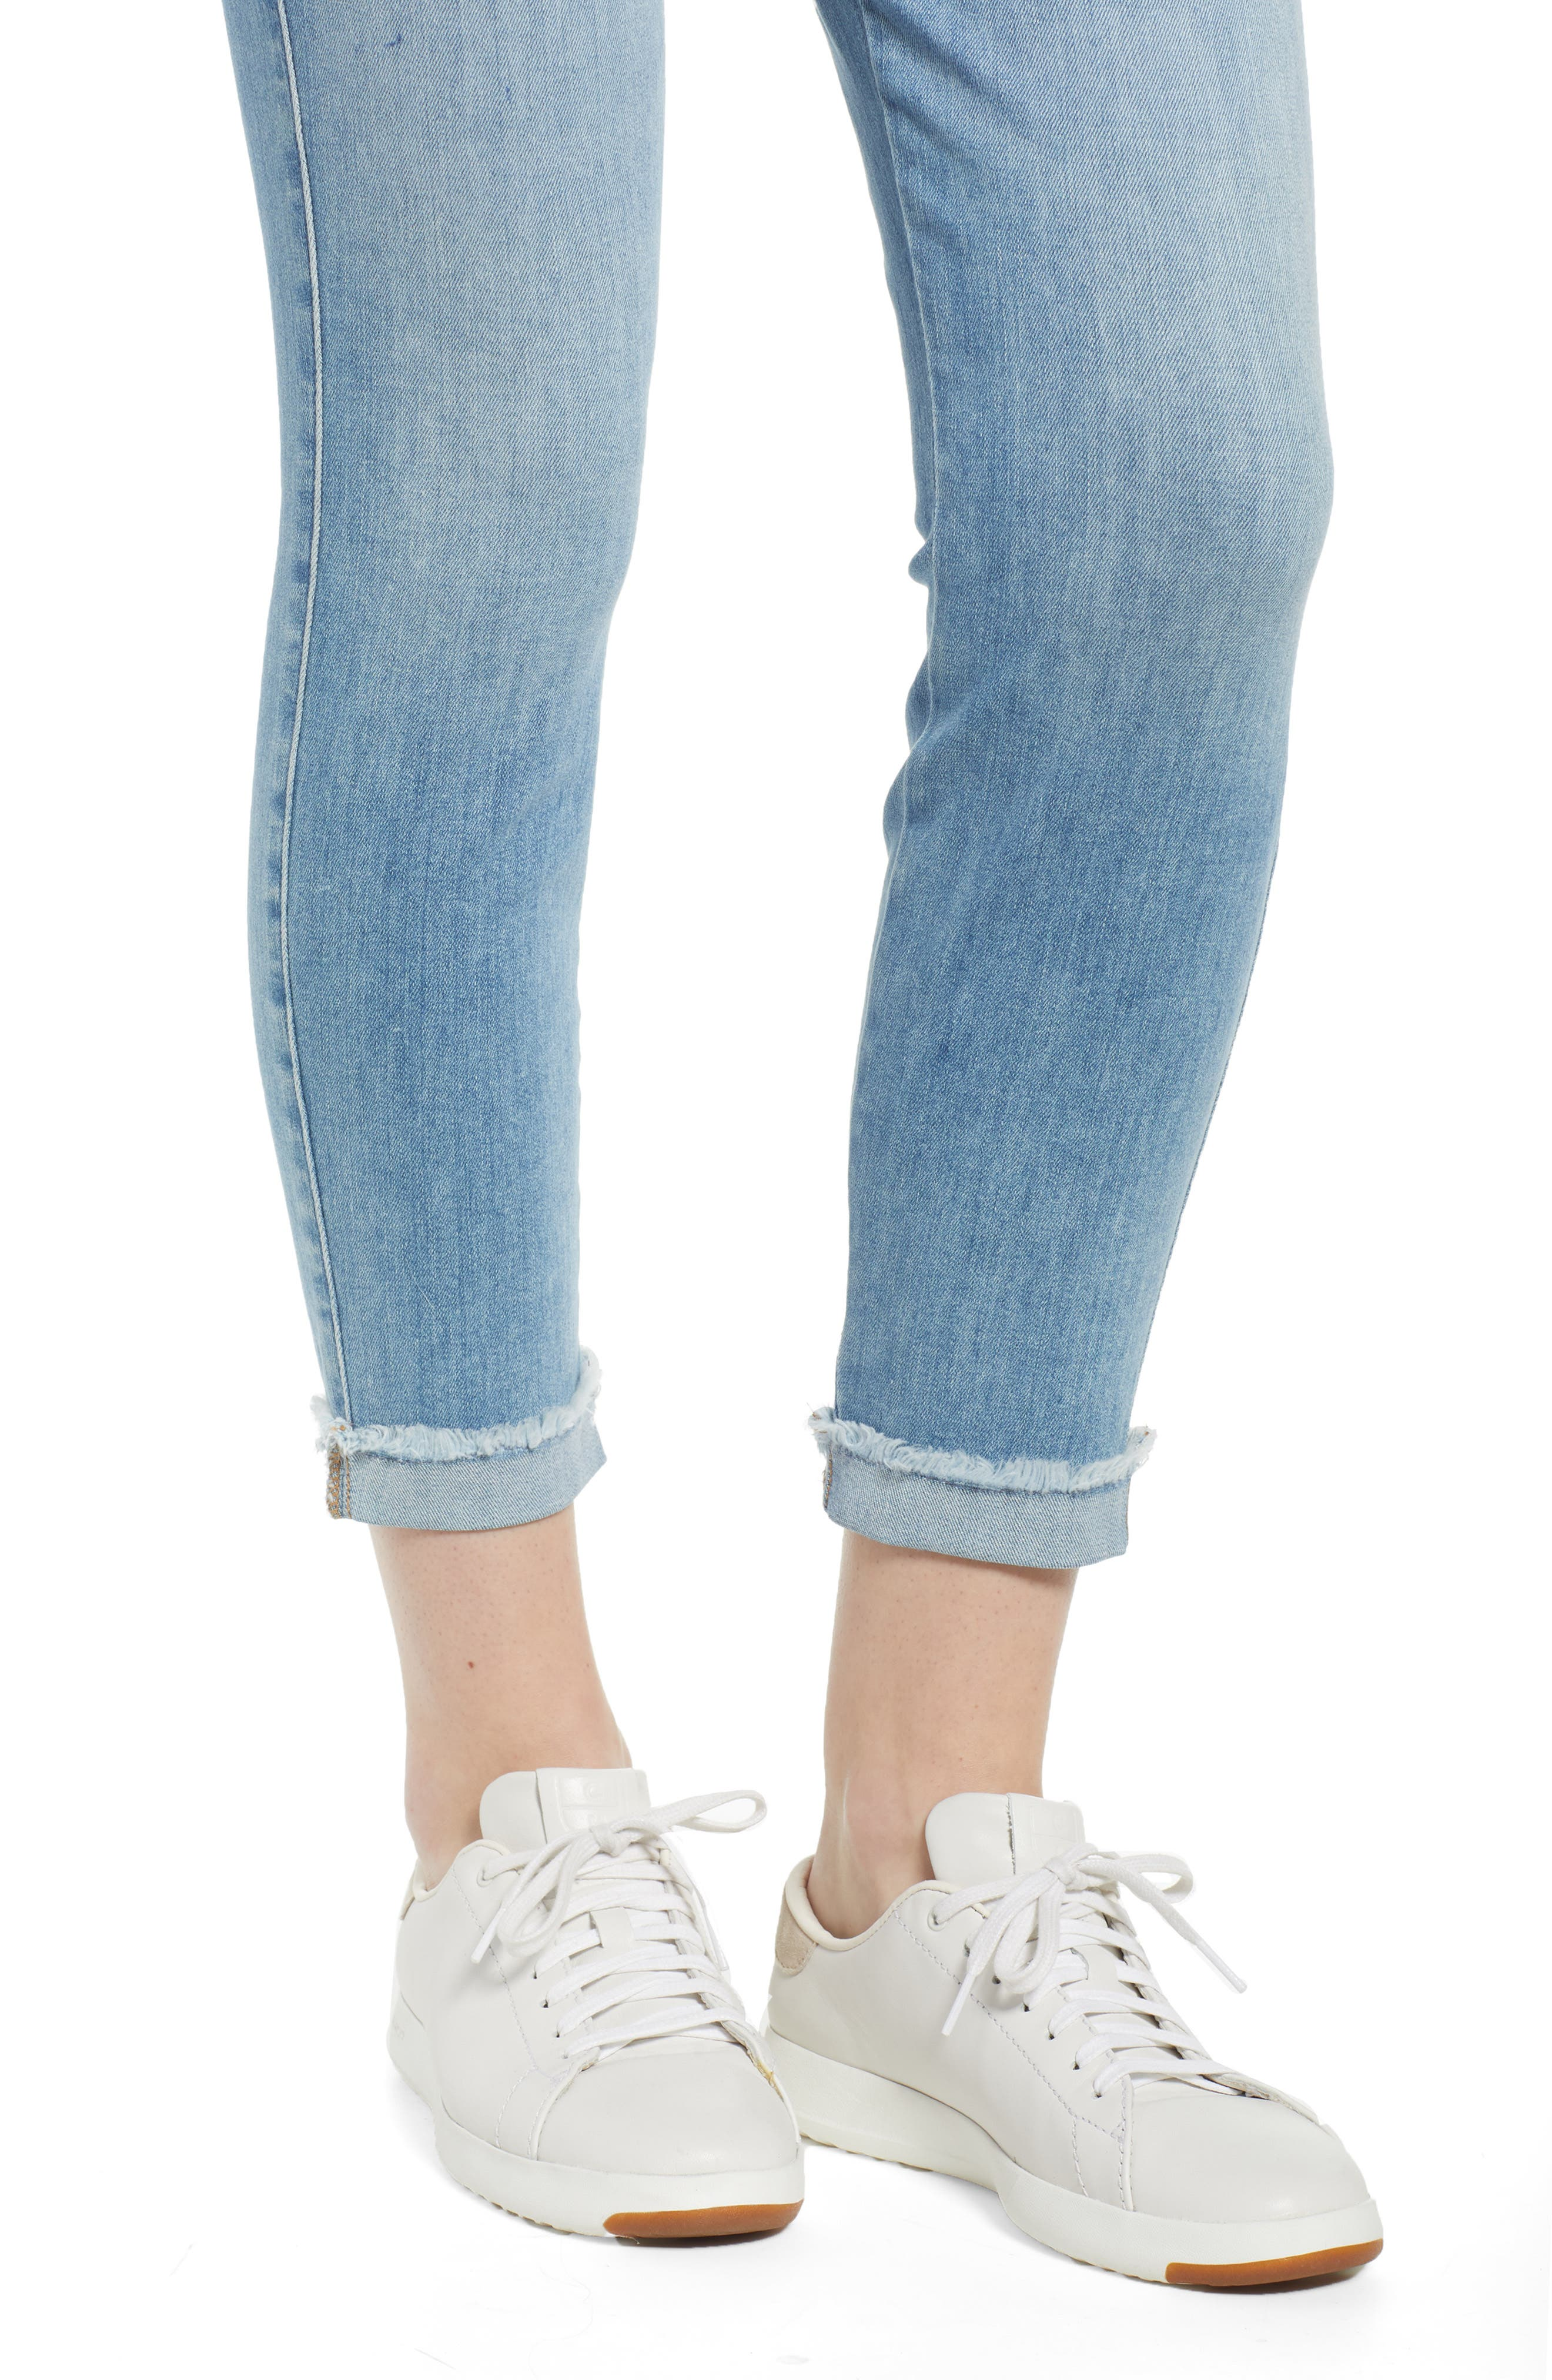 JEN7 BY 7 FOR ALL MANKIND, Cuffed Crop Skinny Jeans, Alternate thumbnail 5, color, LA QUINTA